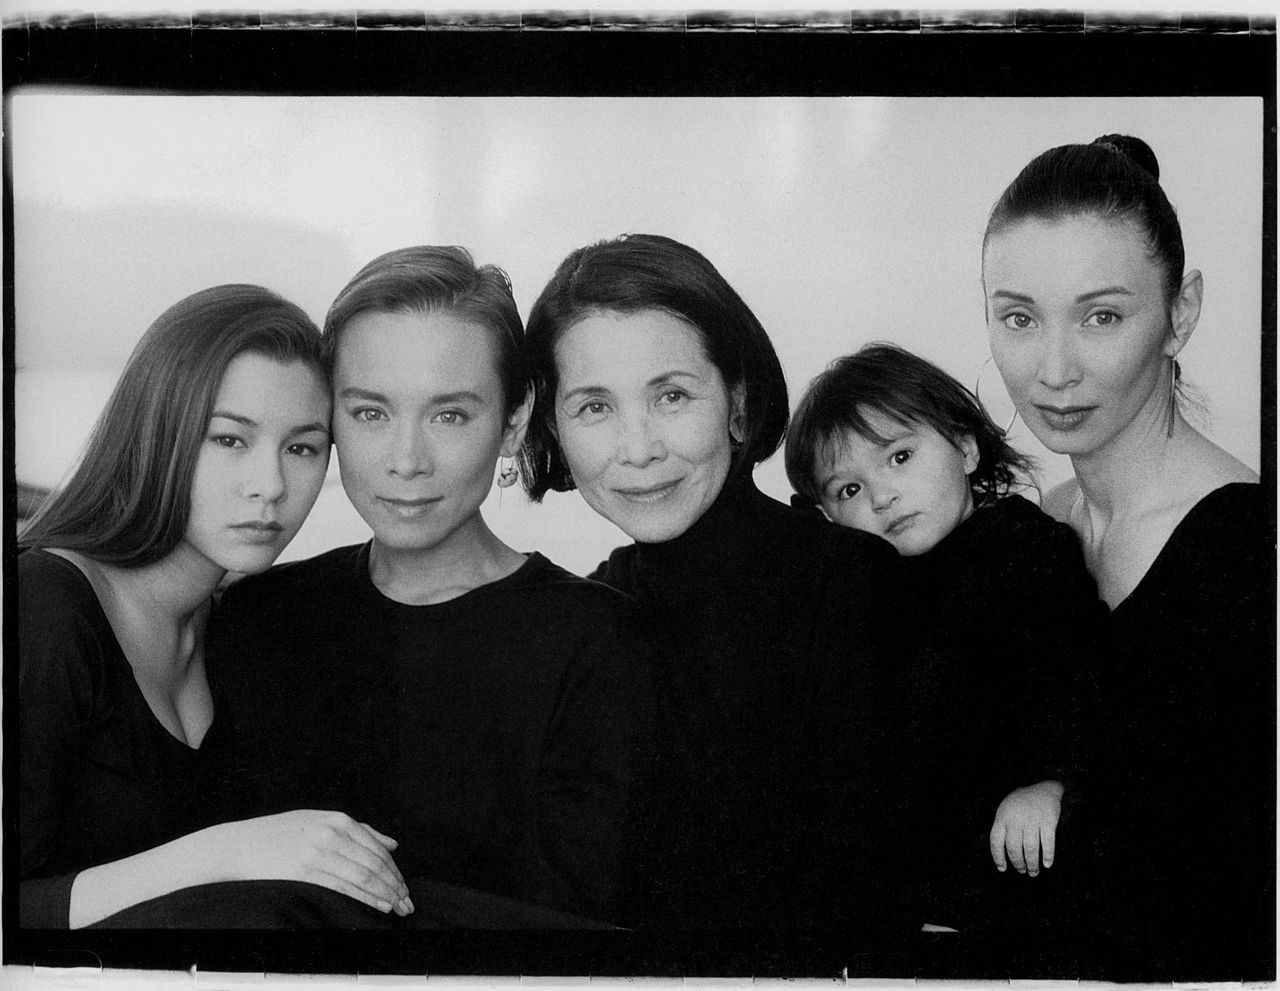 China Chow Tina Chow Mona Miyako Lutz Malu Byrne And Adele Lutz